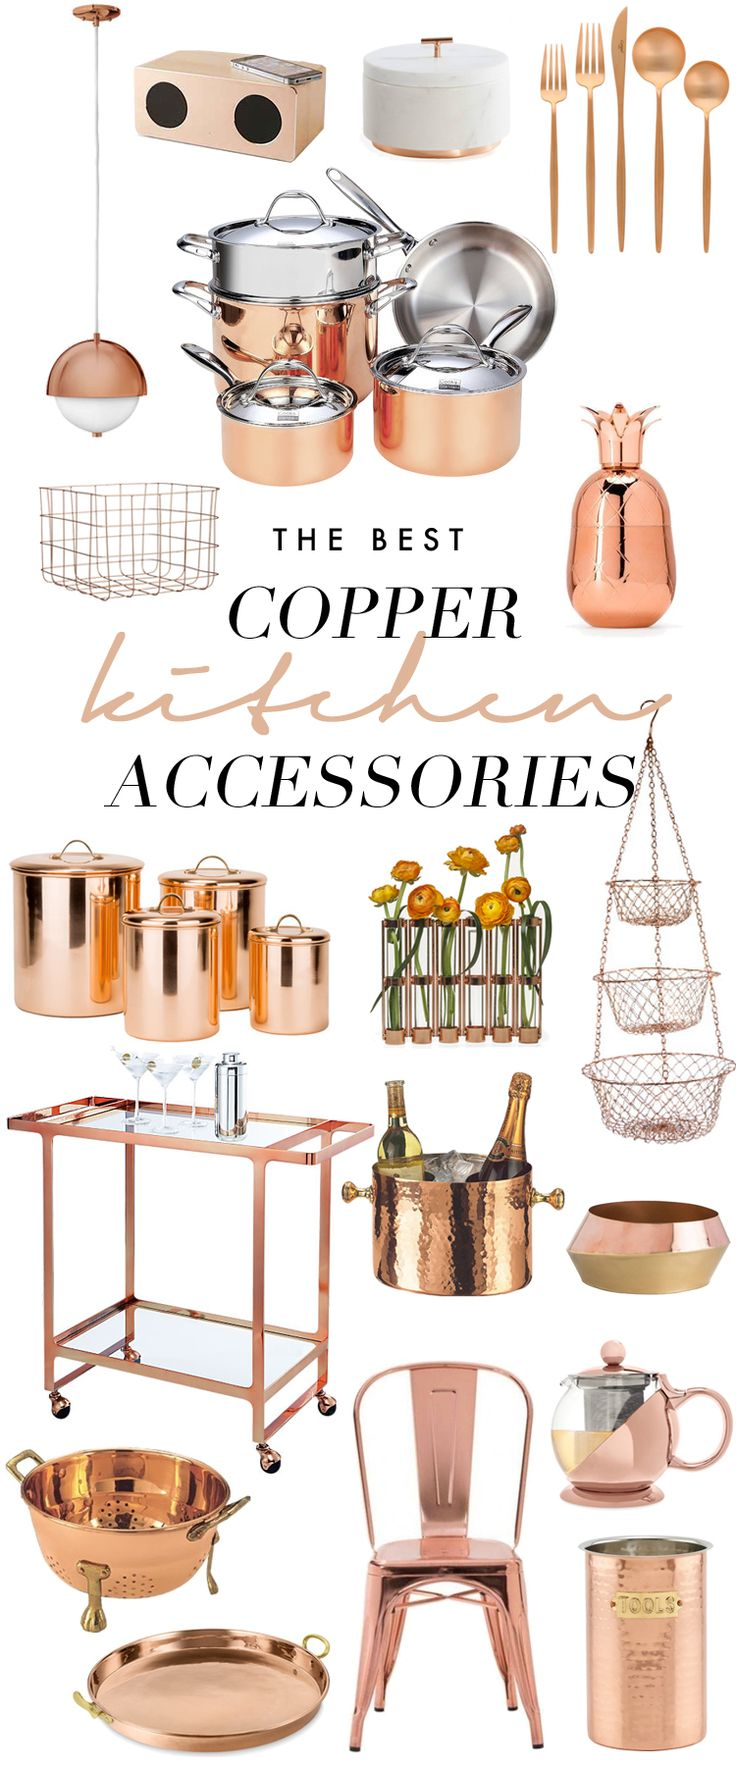 Farmhouse Decorating Ideas. The Best Copper Kitchen Accessories: https://www.sarahbaynes.com/copper-kitchen-accents/